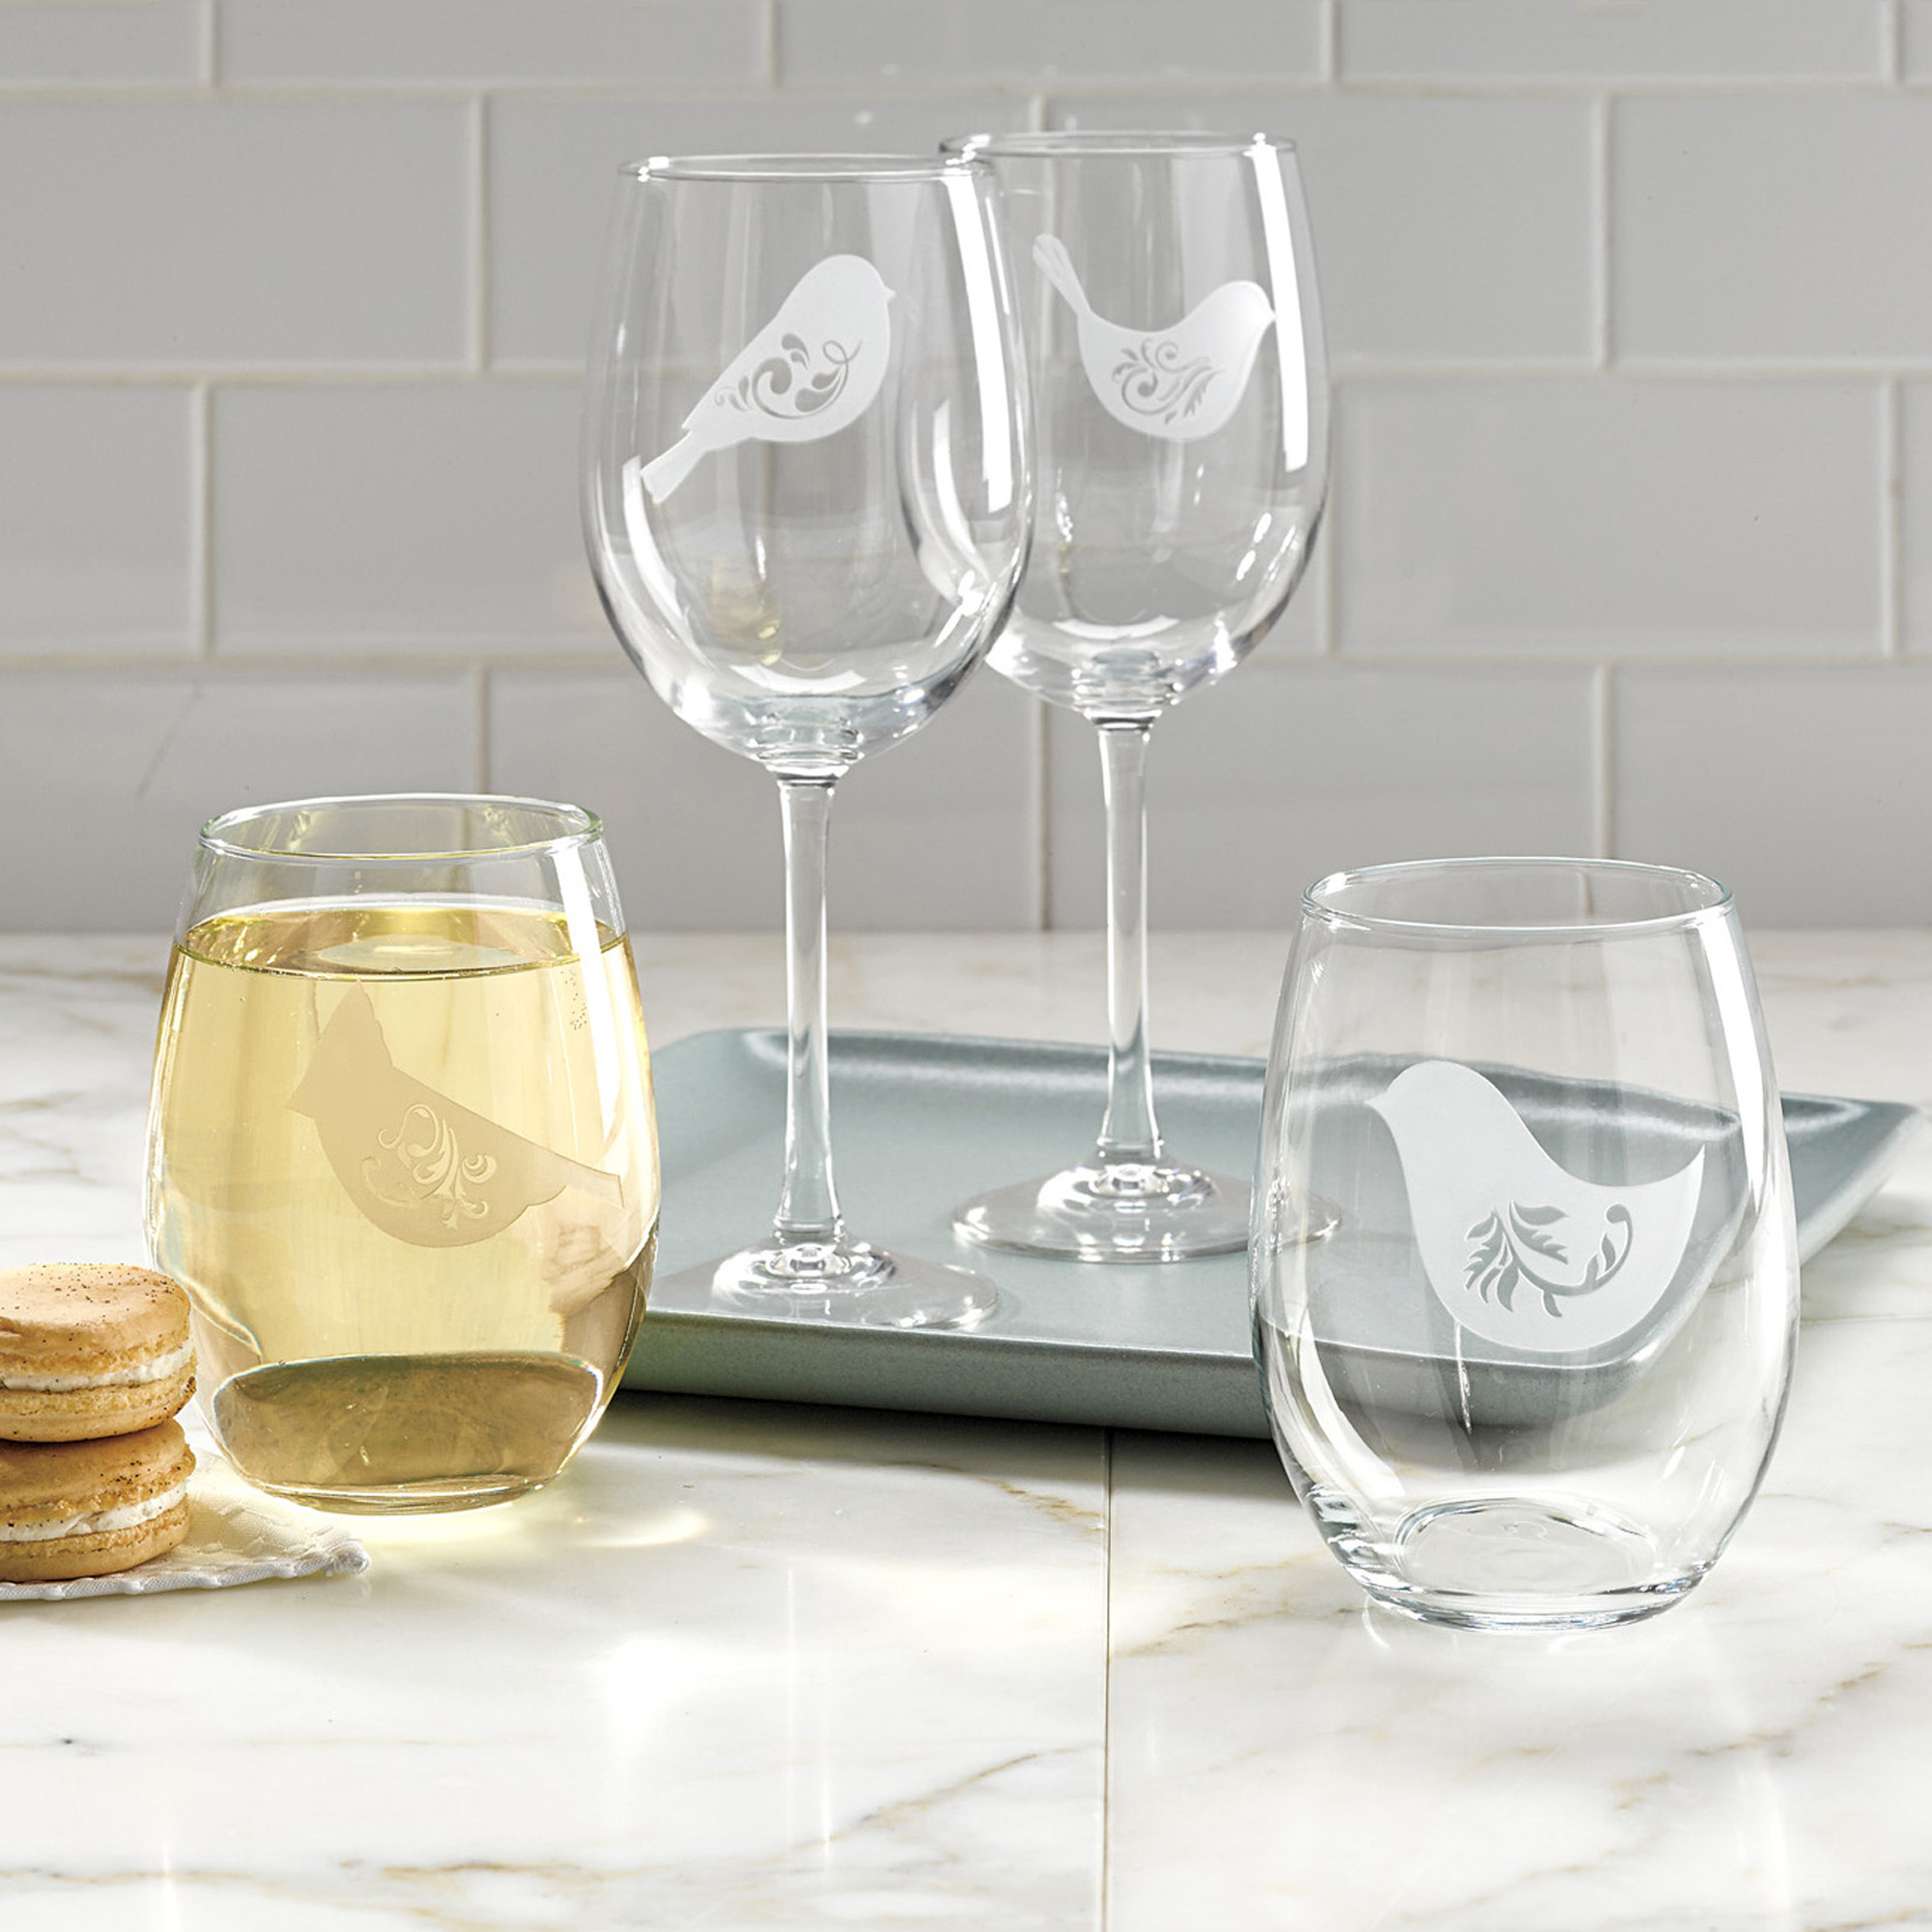 Songbird Wine Glasses